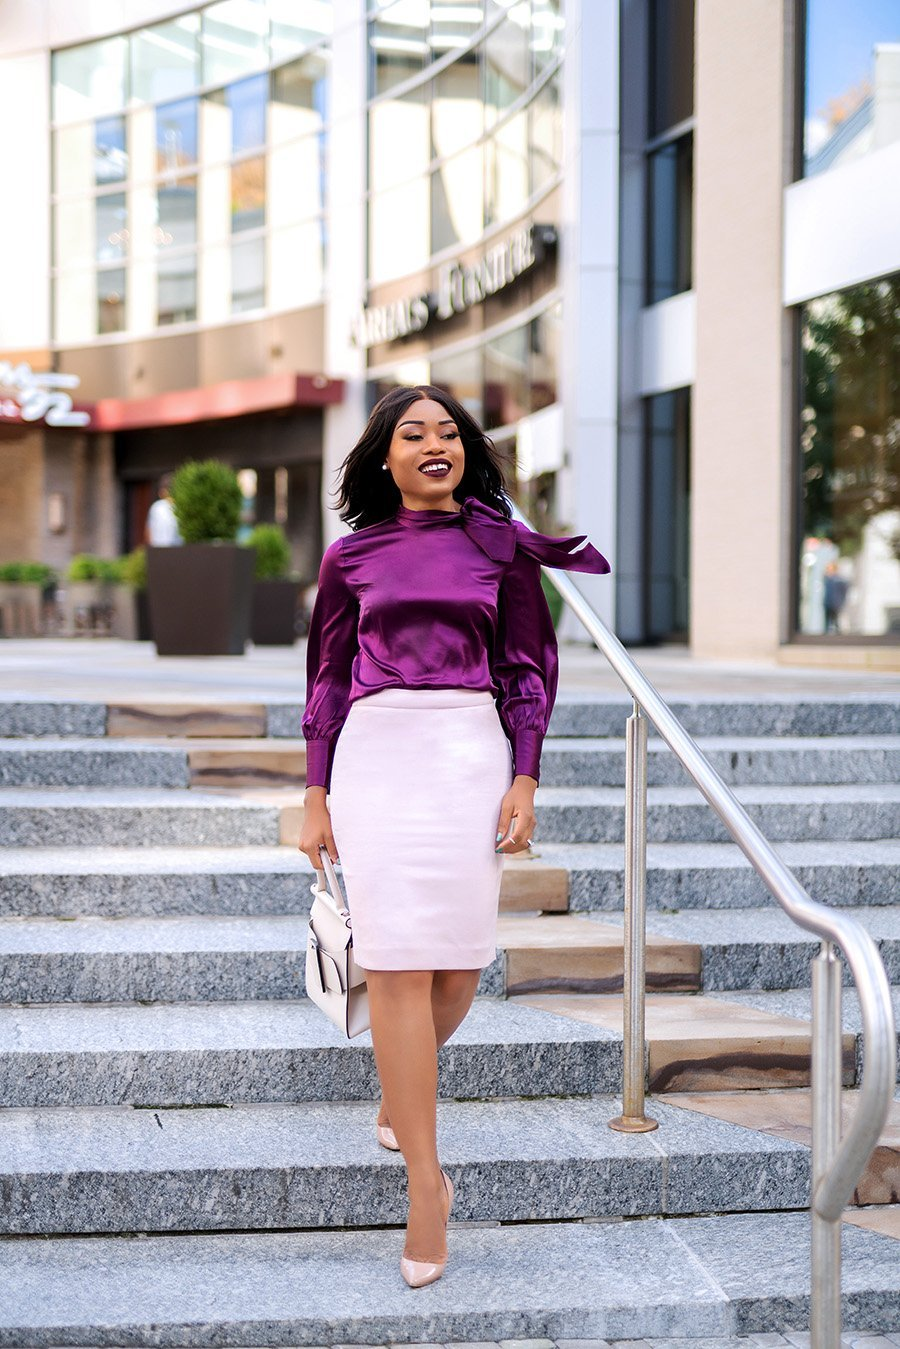 Fashion-blogger-Stella-Adewunmi-of-Jadore-Fashion-show-how-to-mix-color-for-fall-work